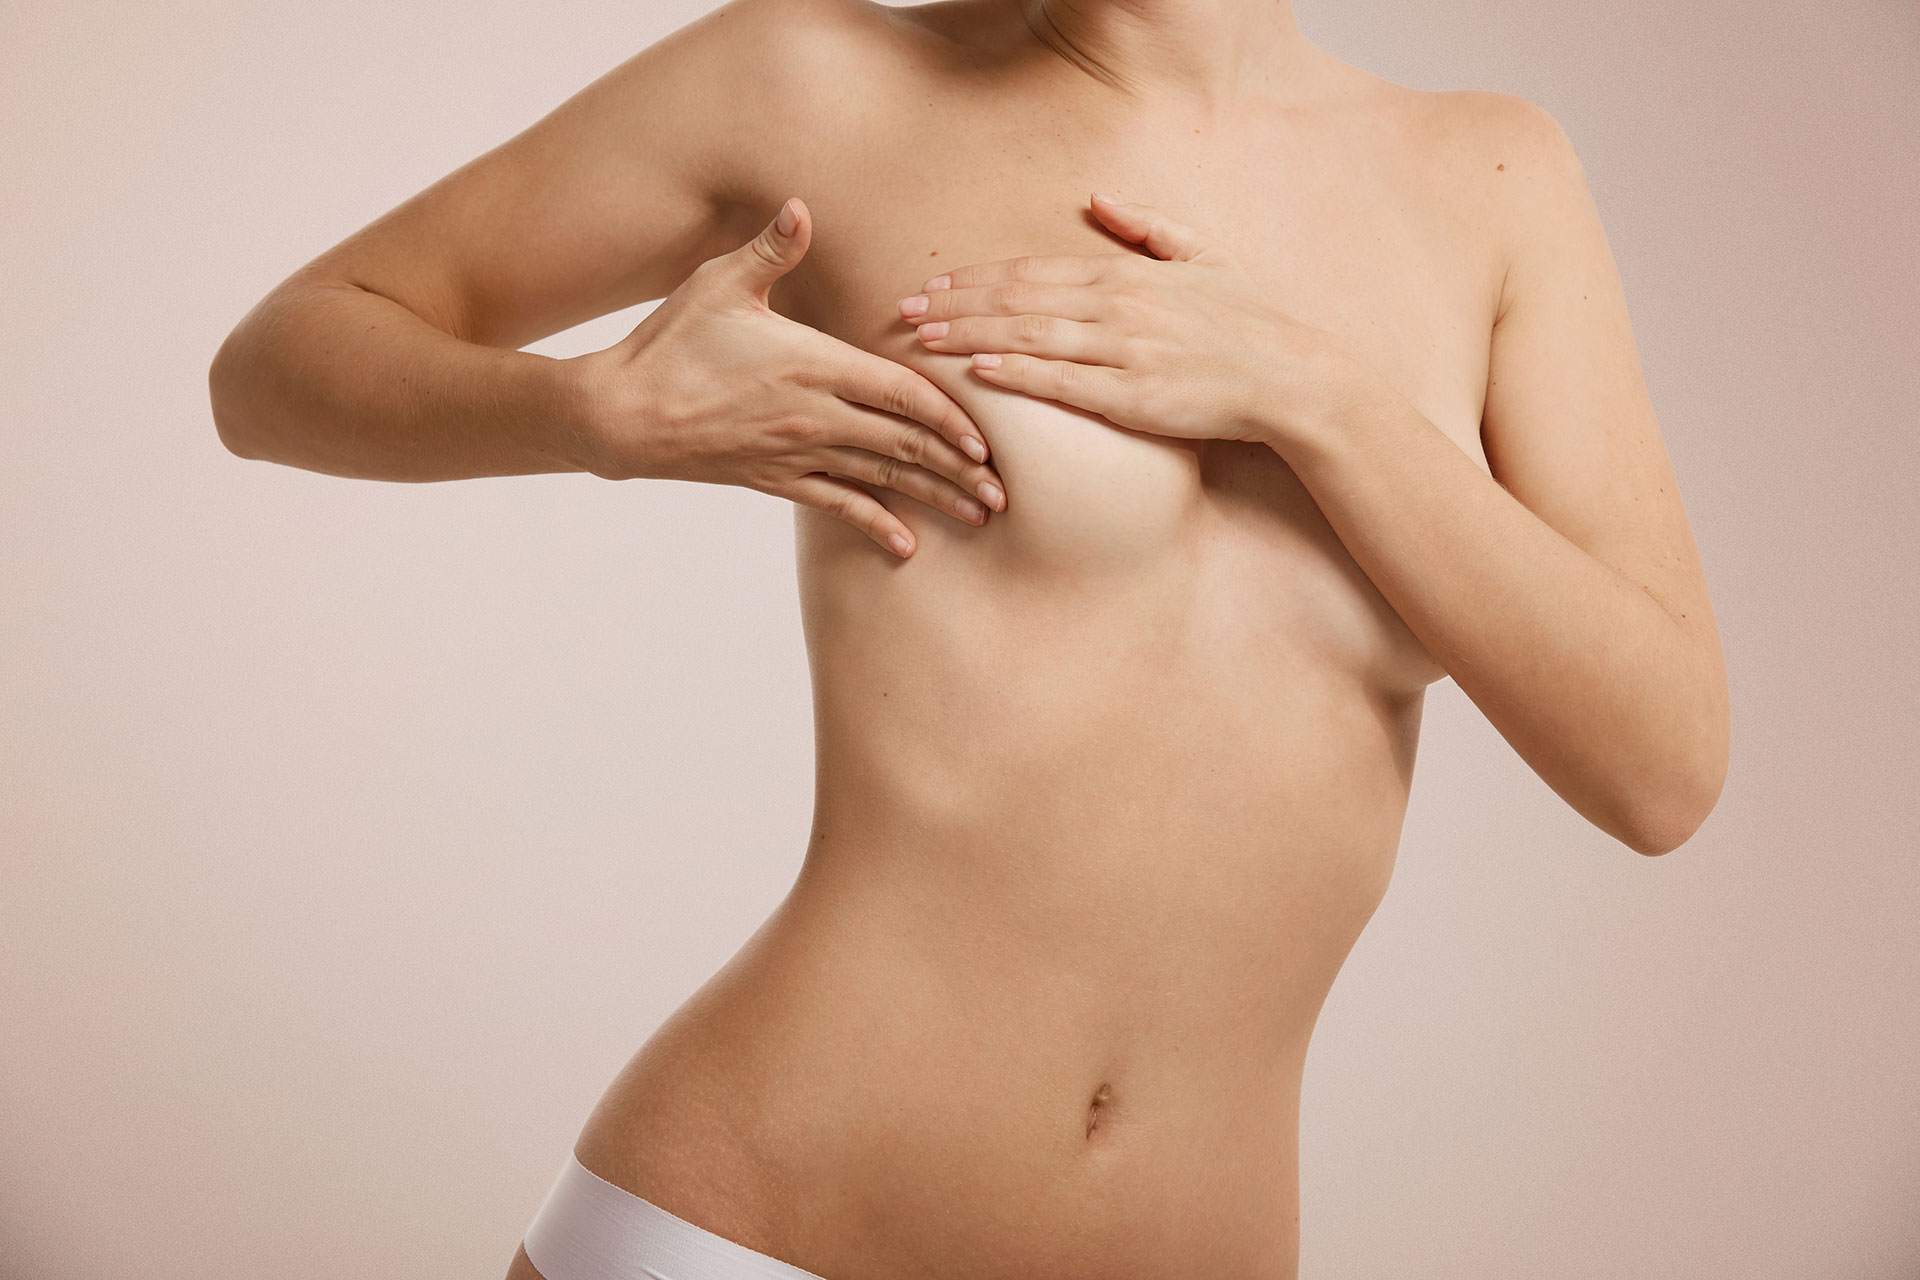 Breast cancer detection, symptoms, causes and treatments